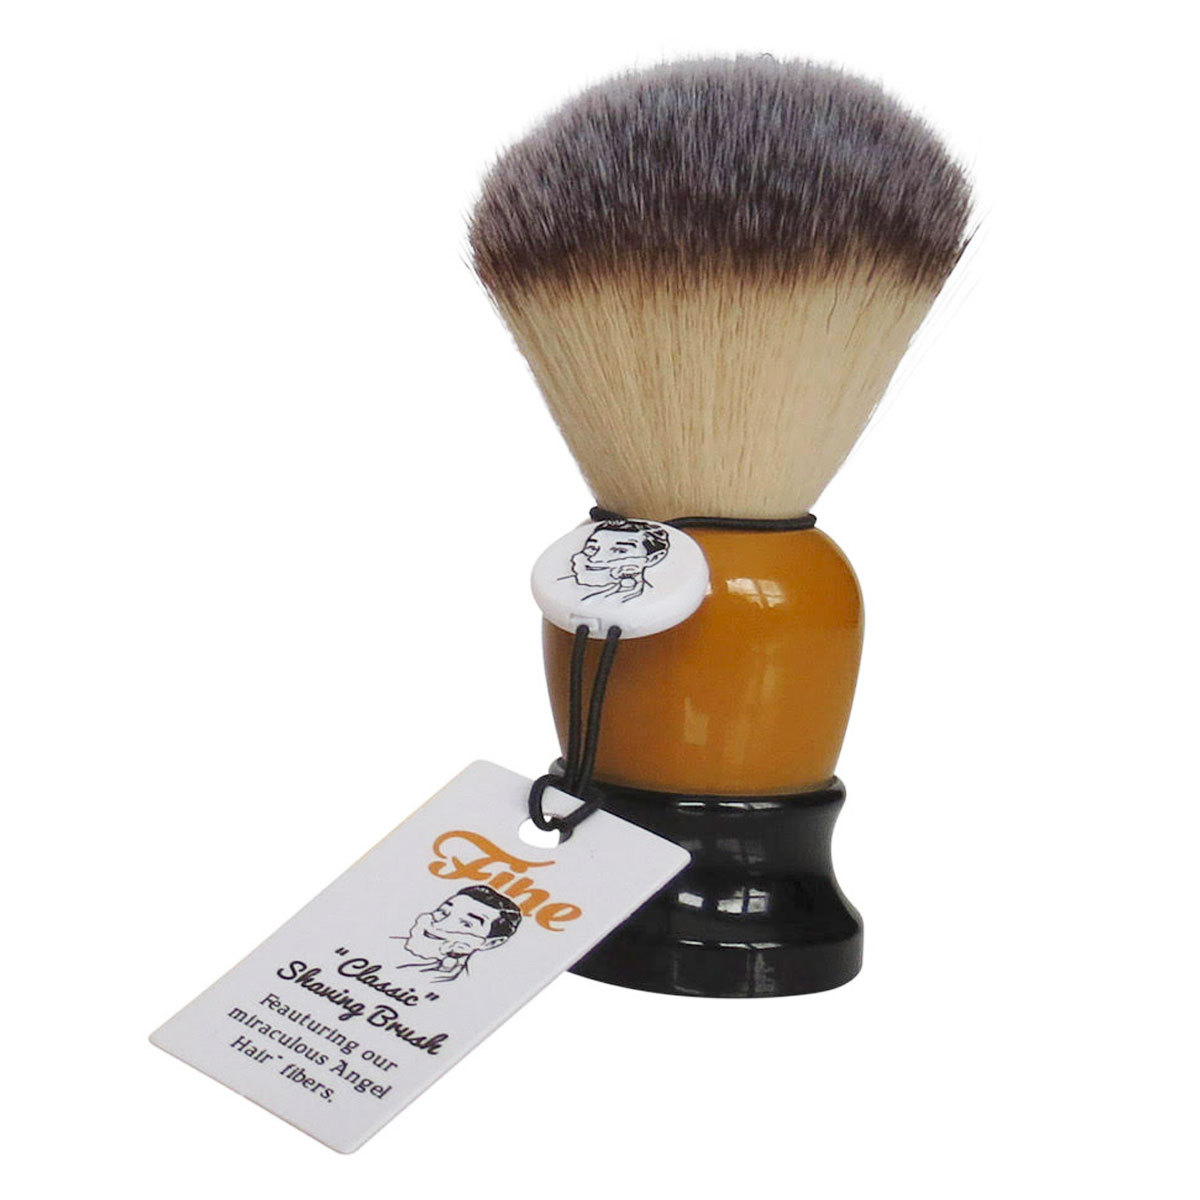 FINE ACCOUTREMENTS Brush Black/Orange 20 mm